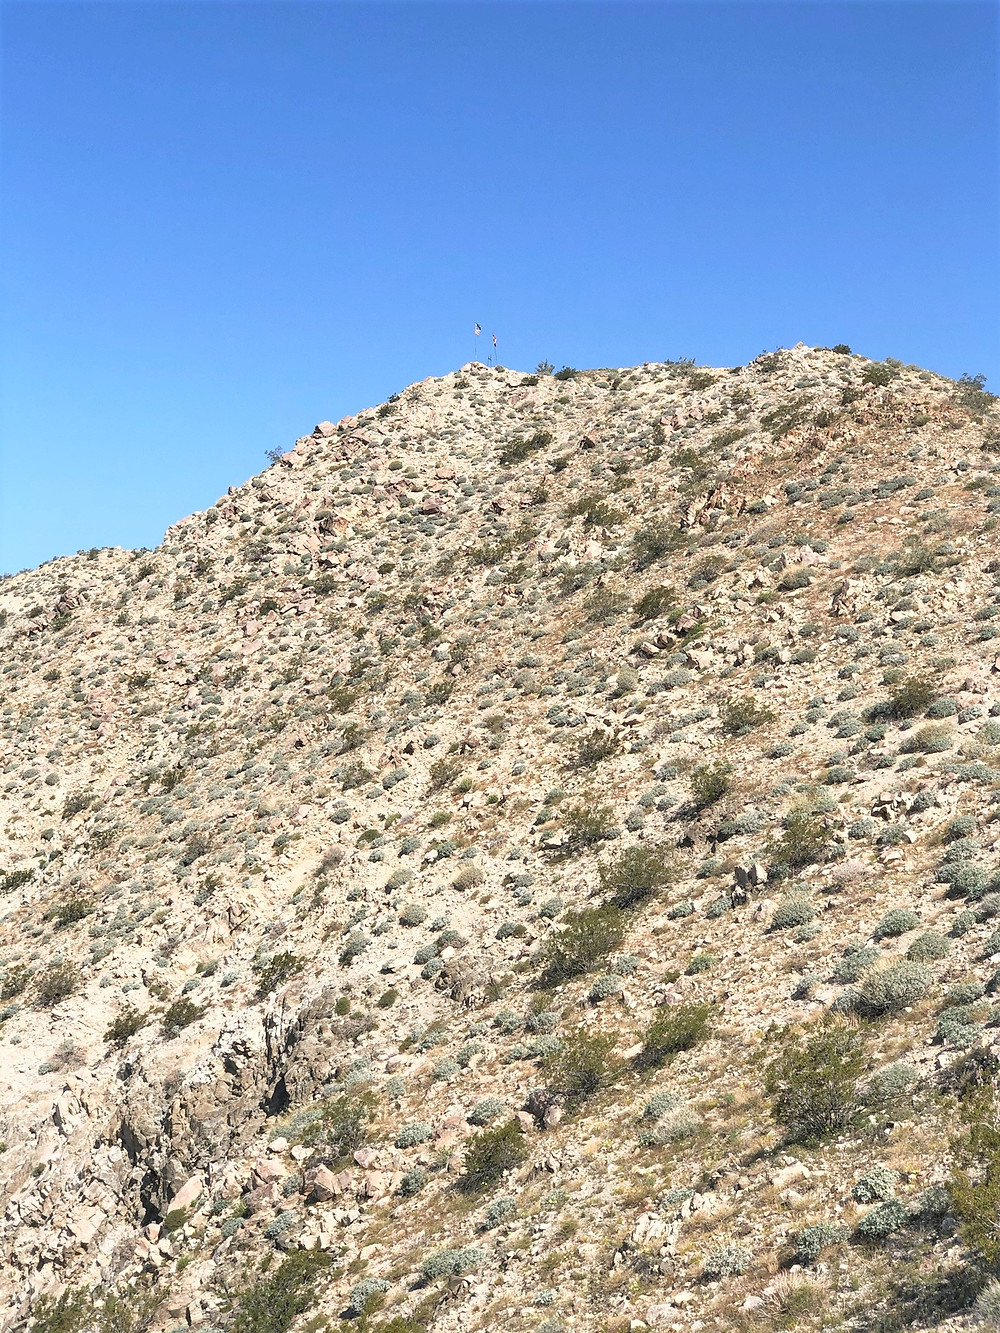 Hiking the Chocolate Drop Trail to Flag Hill in foothills of Little San Bernardino Mountains in Desert Hot Springs